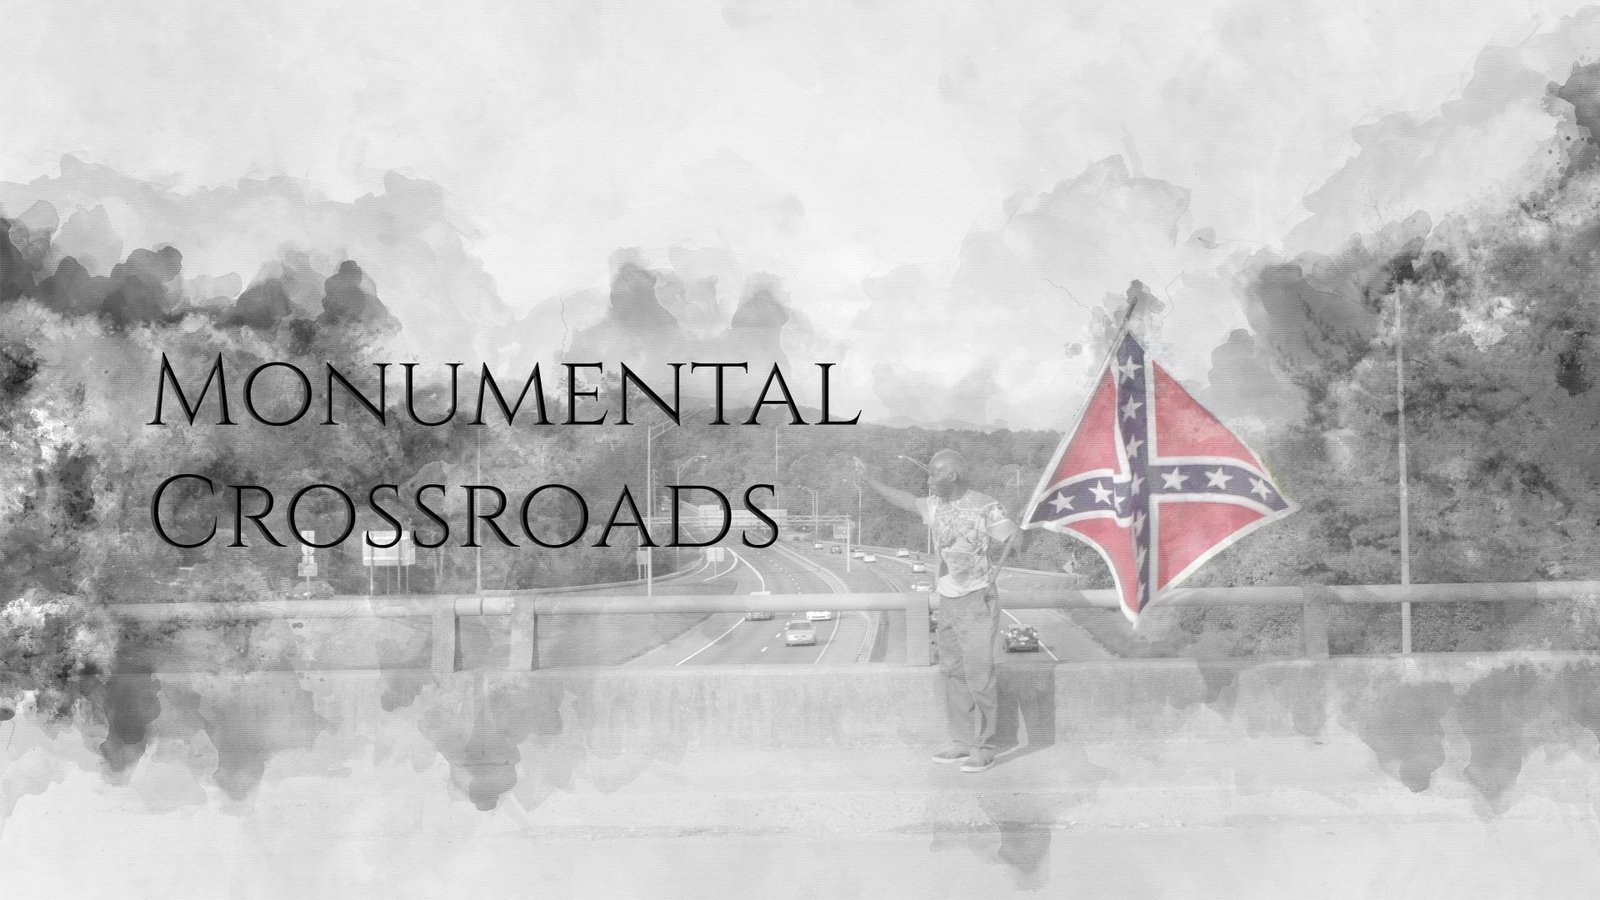 Monumental Crossroads - The Legacy of Southern Heritage